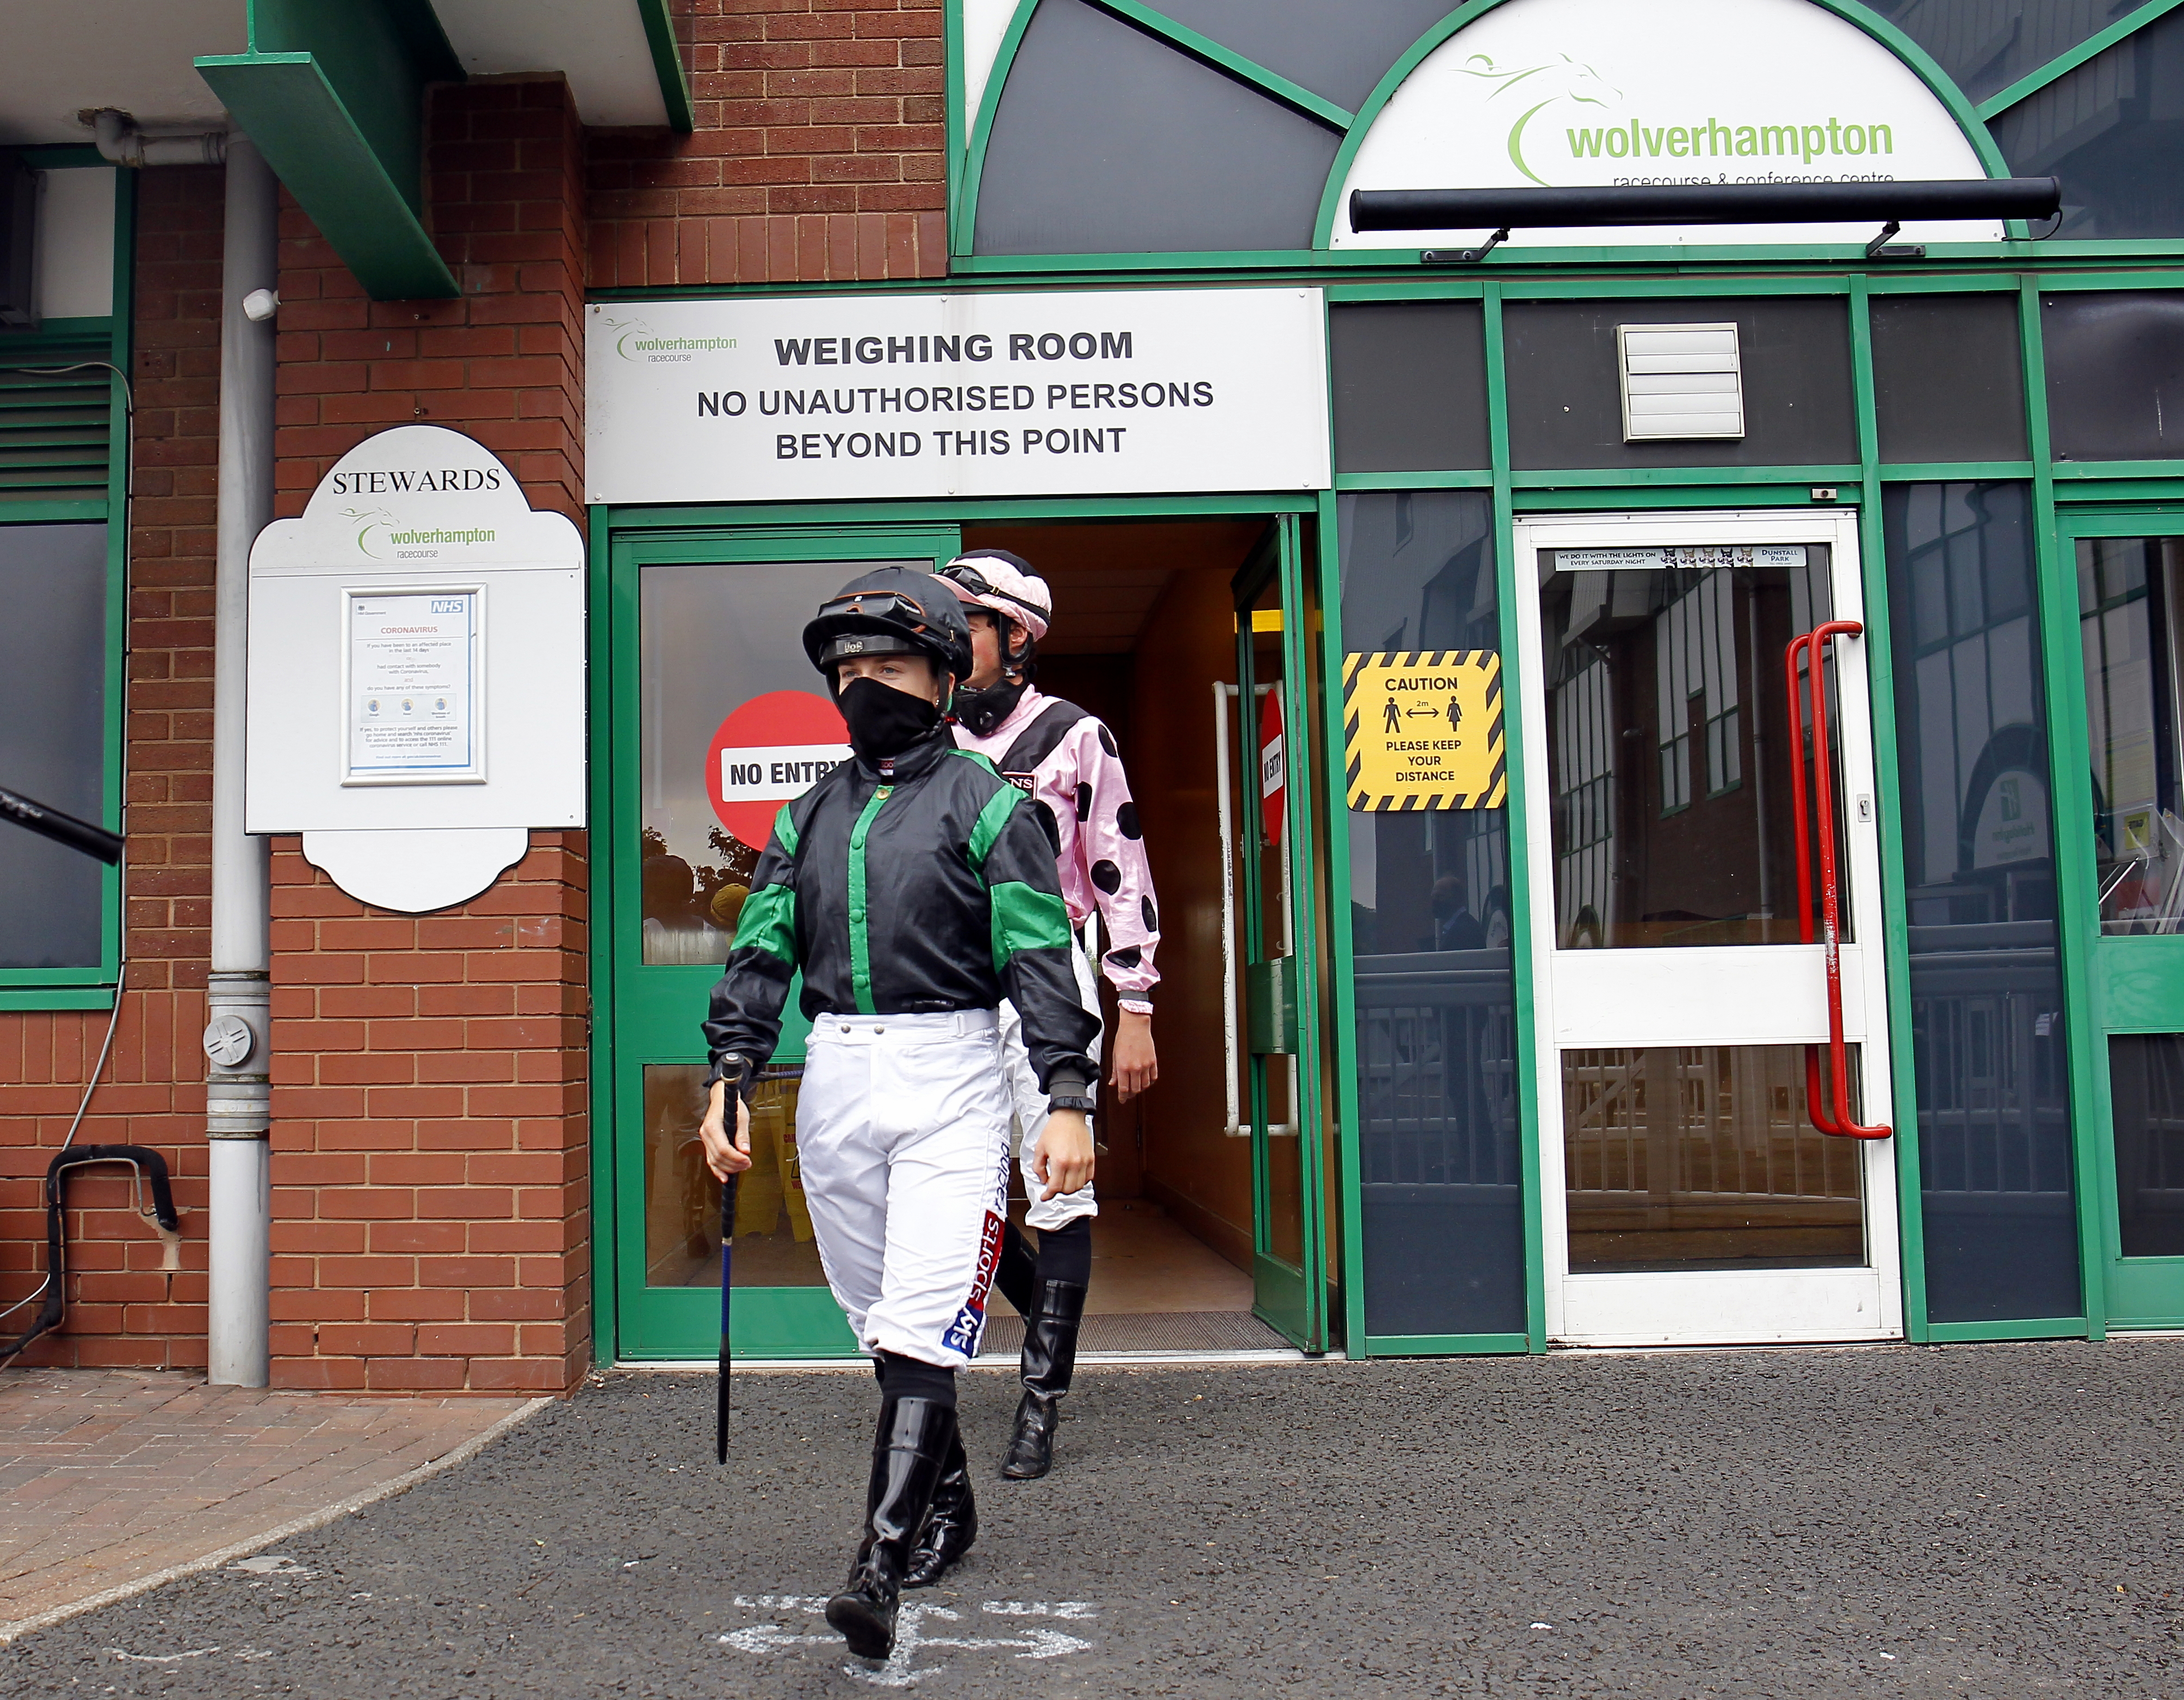 WOLVERHAMPTON, ENGLAND - JUNE 12: Hollie Doyle heads out of the weighing room to the paddock prior to a race at Wolverhampton Racecourse on June 12, 2020 in Wolverhampton, England. (Photo by Steve Davies/Pool via Getty Images)